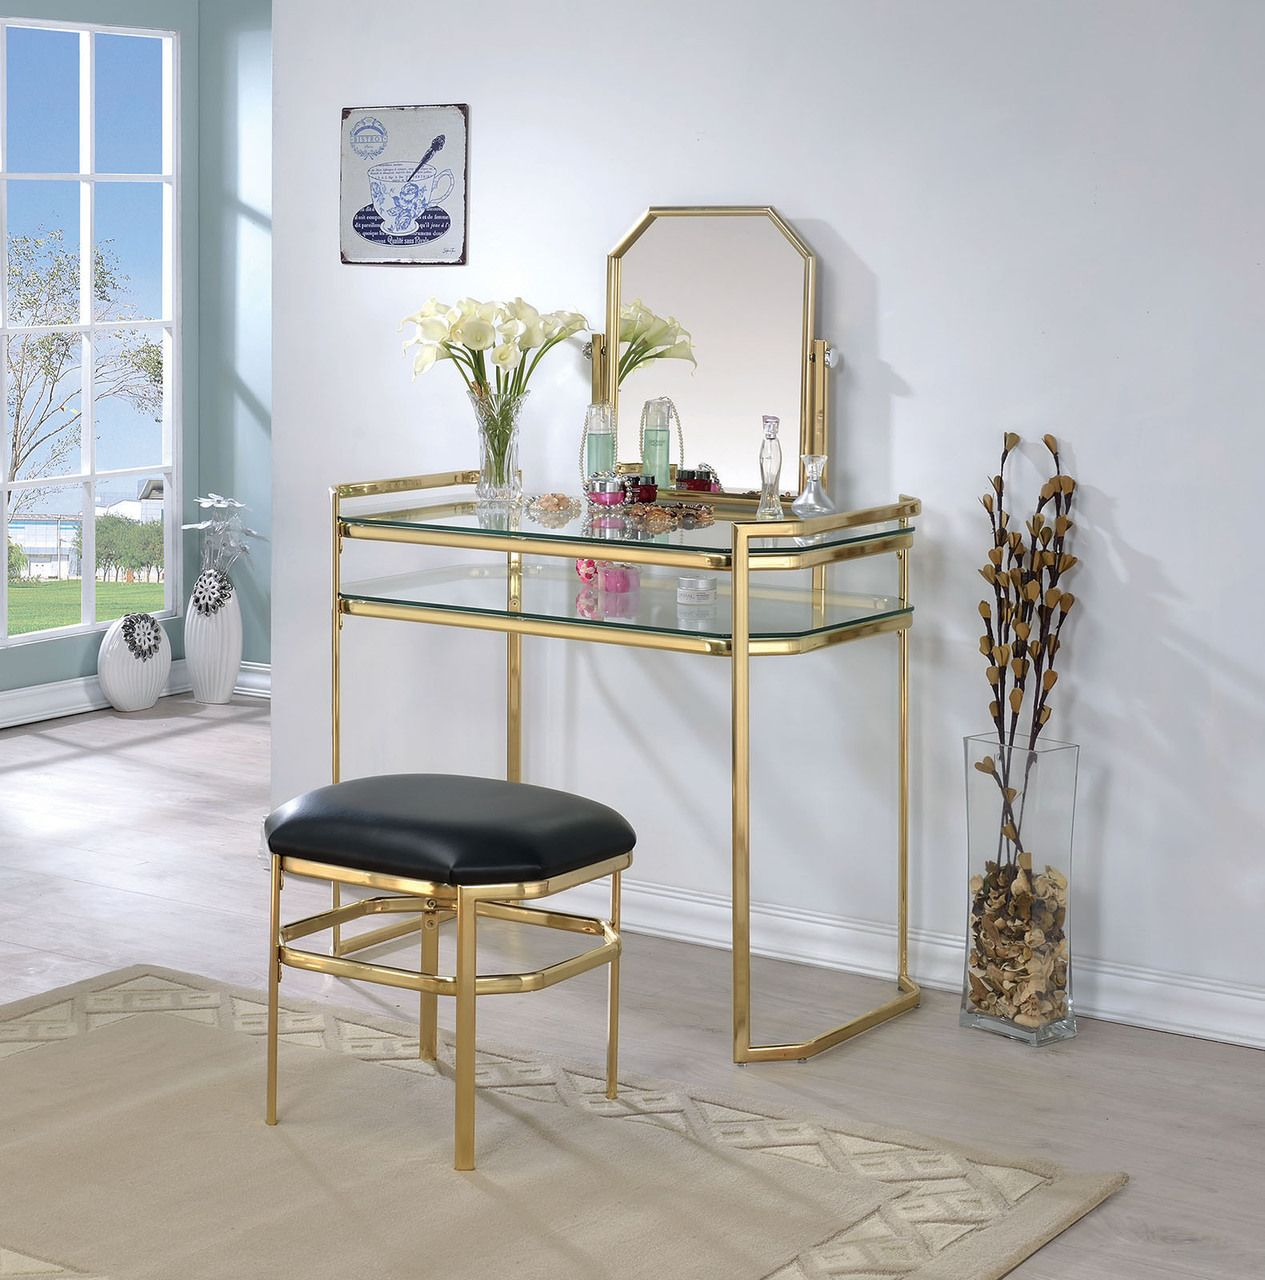 Arlene Gold Finish Metal Glass Makeup Desk Set Vanity Table Set Vanity Set With Mirror Glass Vanity Table